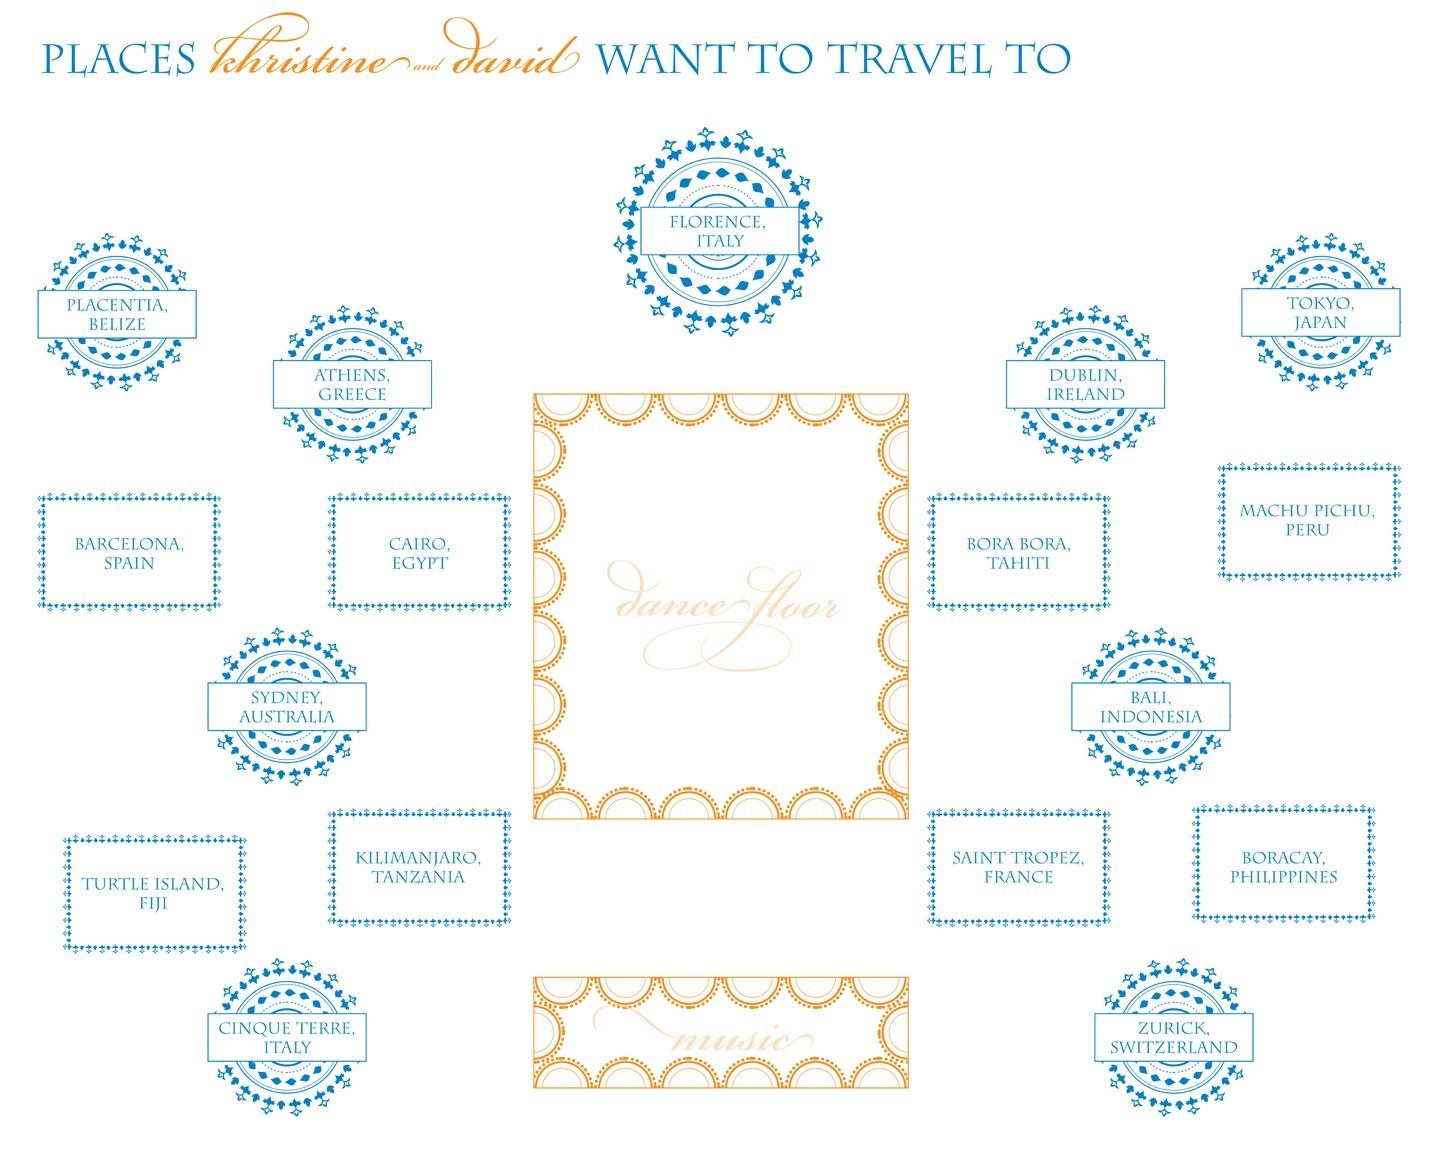 Wedding Guest Seating Chart Template Create A Wanted Poster Free House For  Rent Template